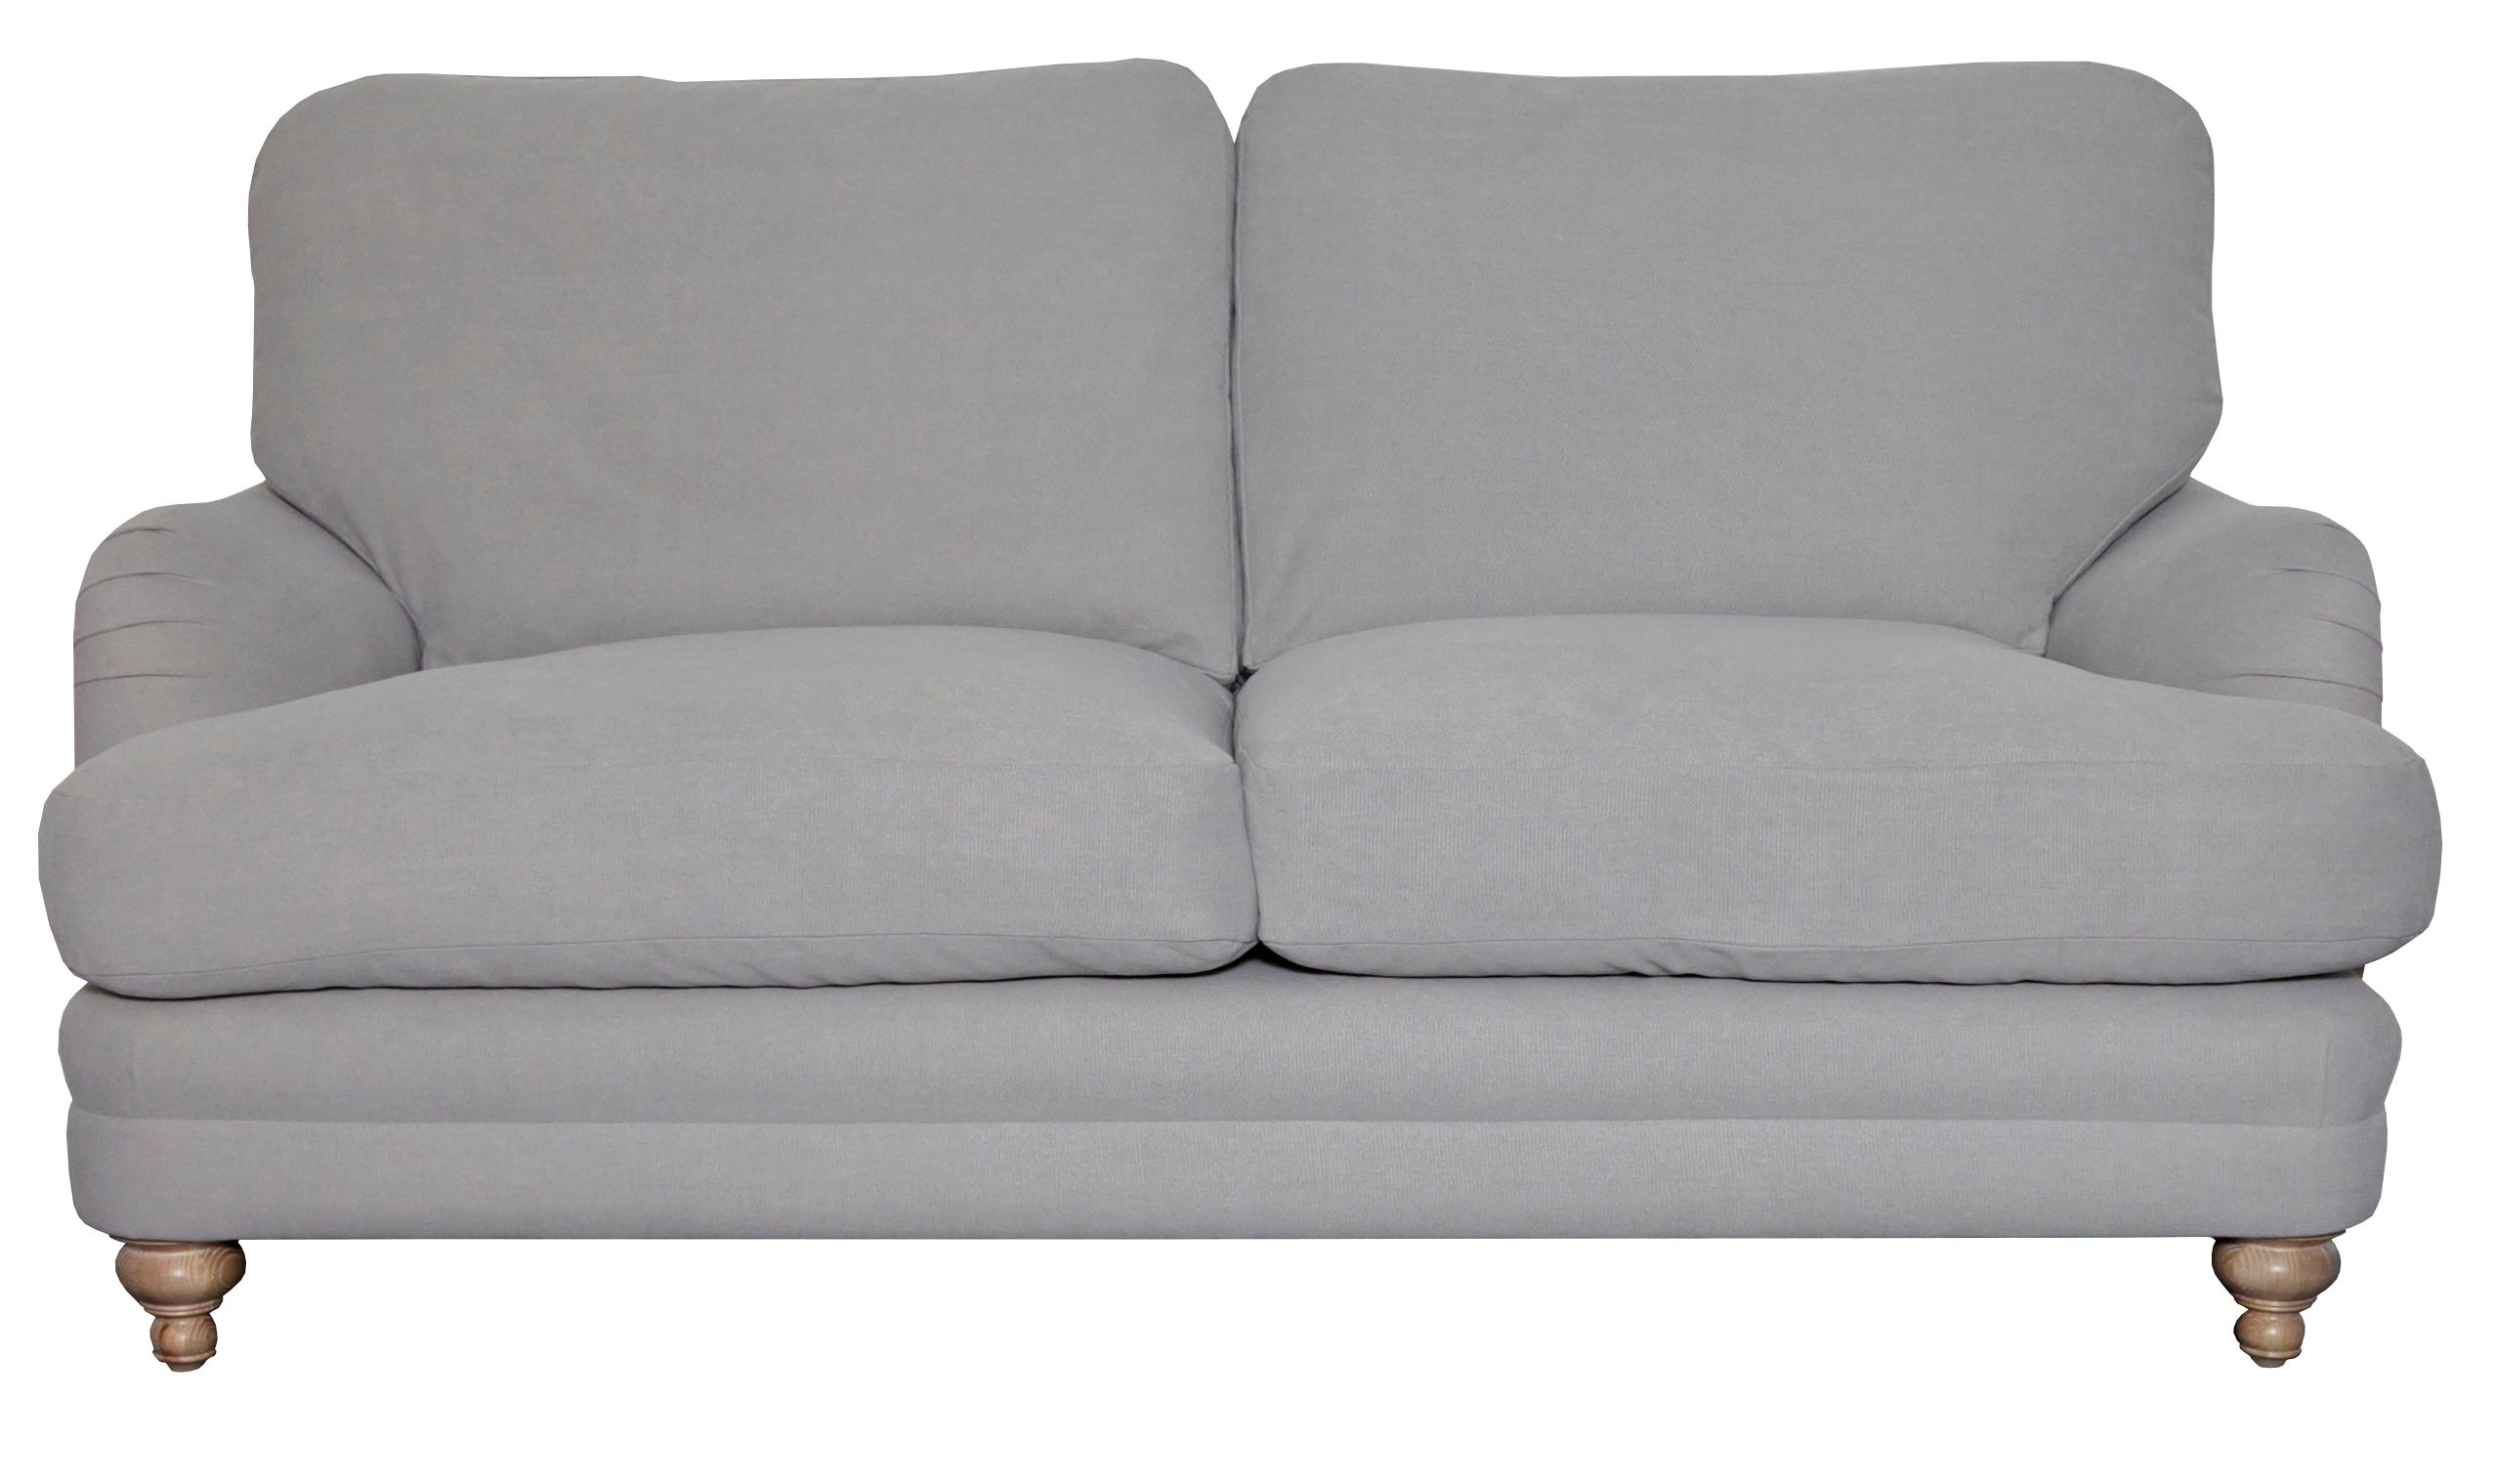 house of fraser corner sofa sofas with removable covers nz and chairs brokeasshome